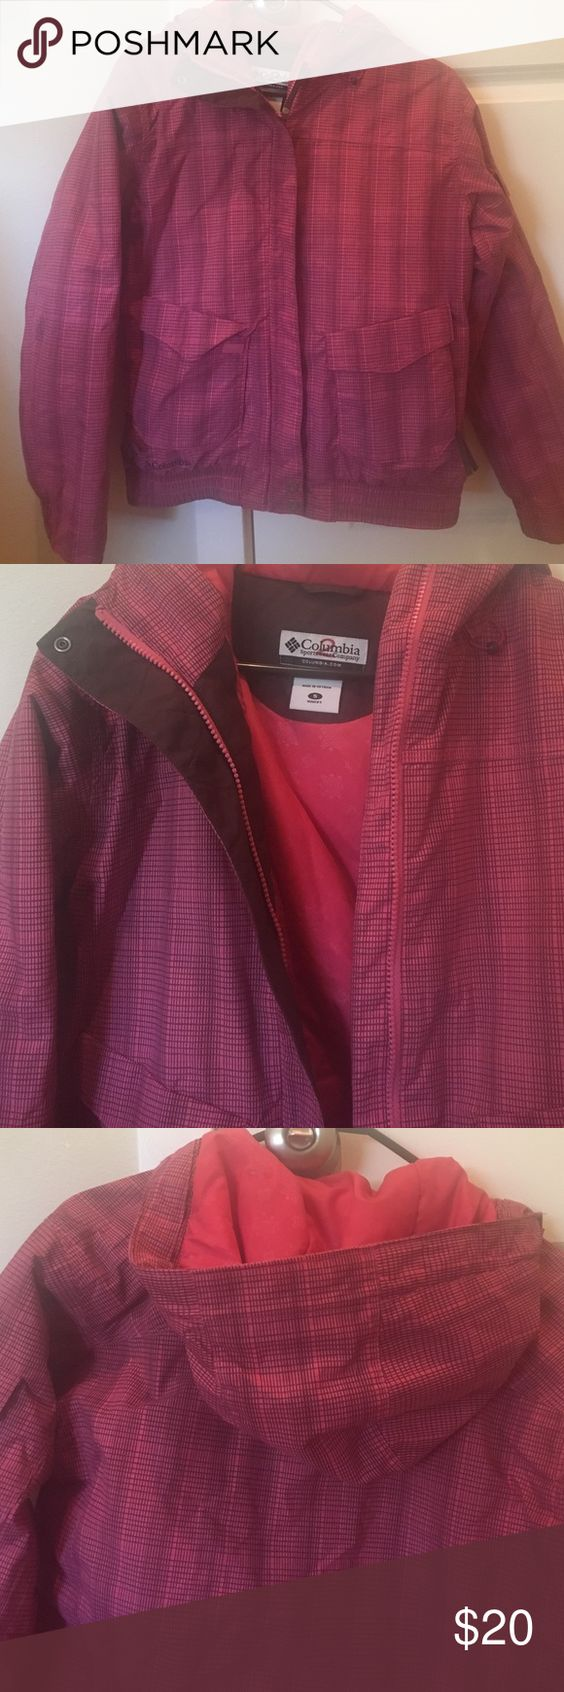 Columbia Sportswear Pink & Brown Winter Jacket Size Small Columbia Sportswear Pink & Brown Winter Jacket. Great condition. Columbia Jackets & Coats